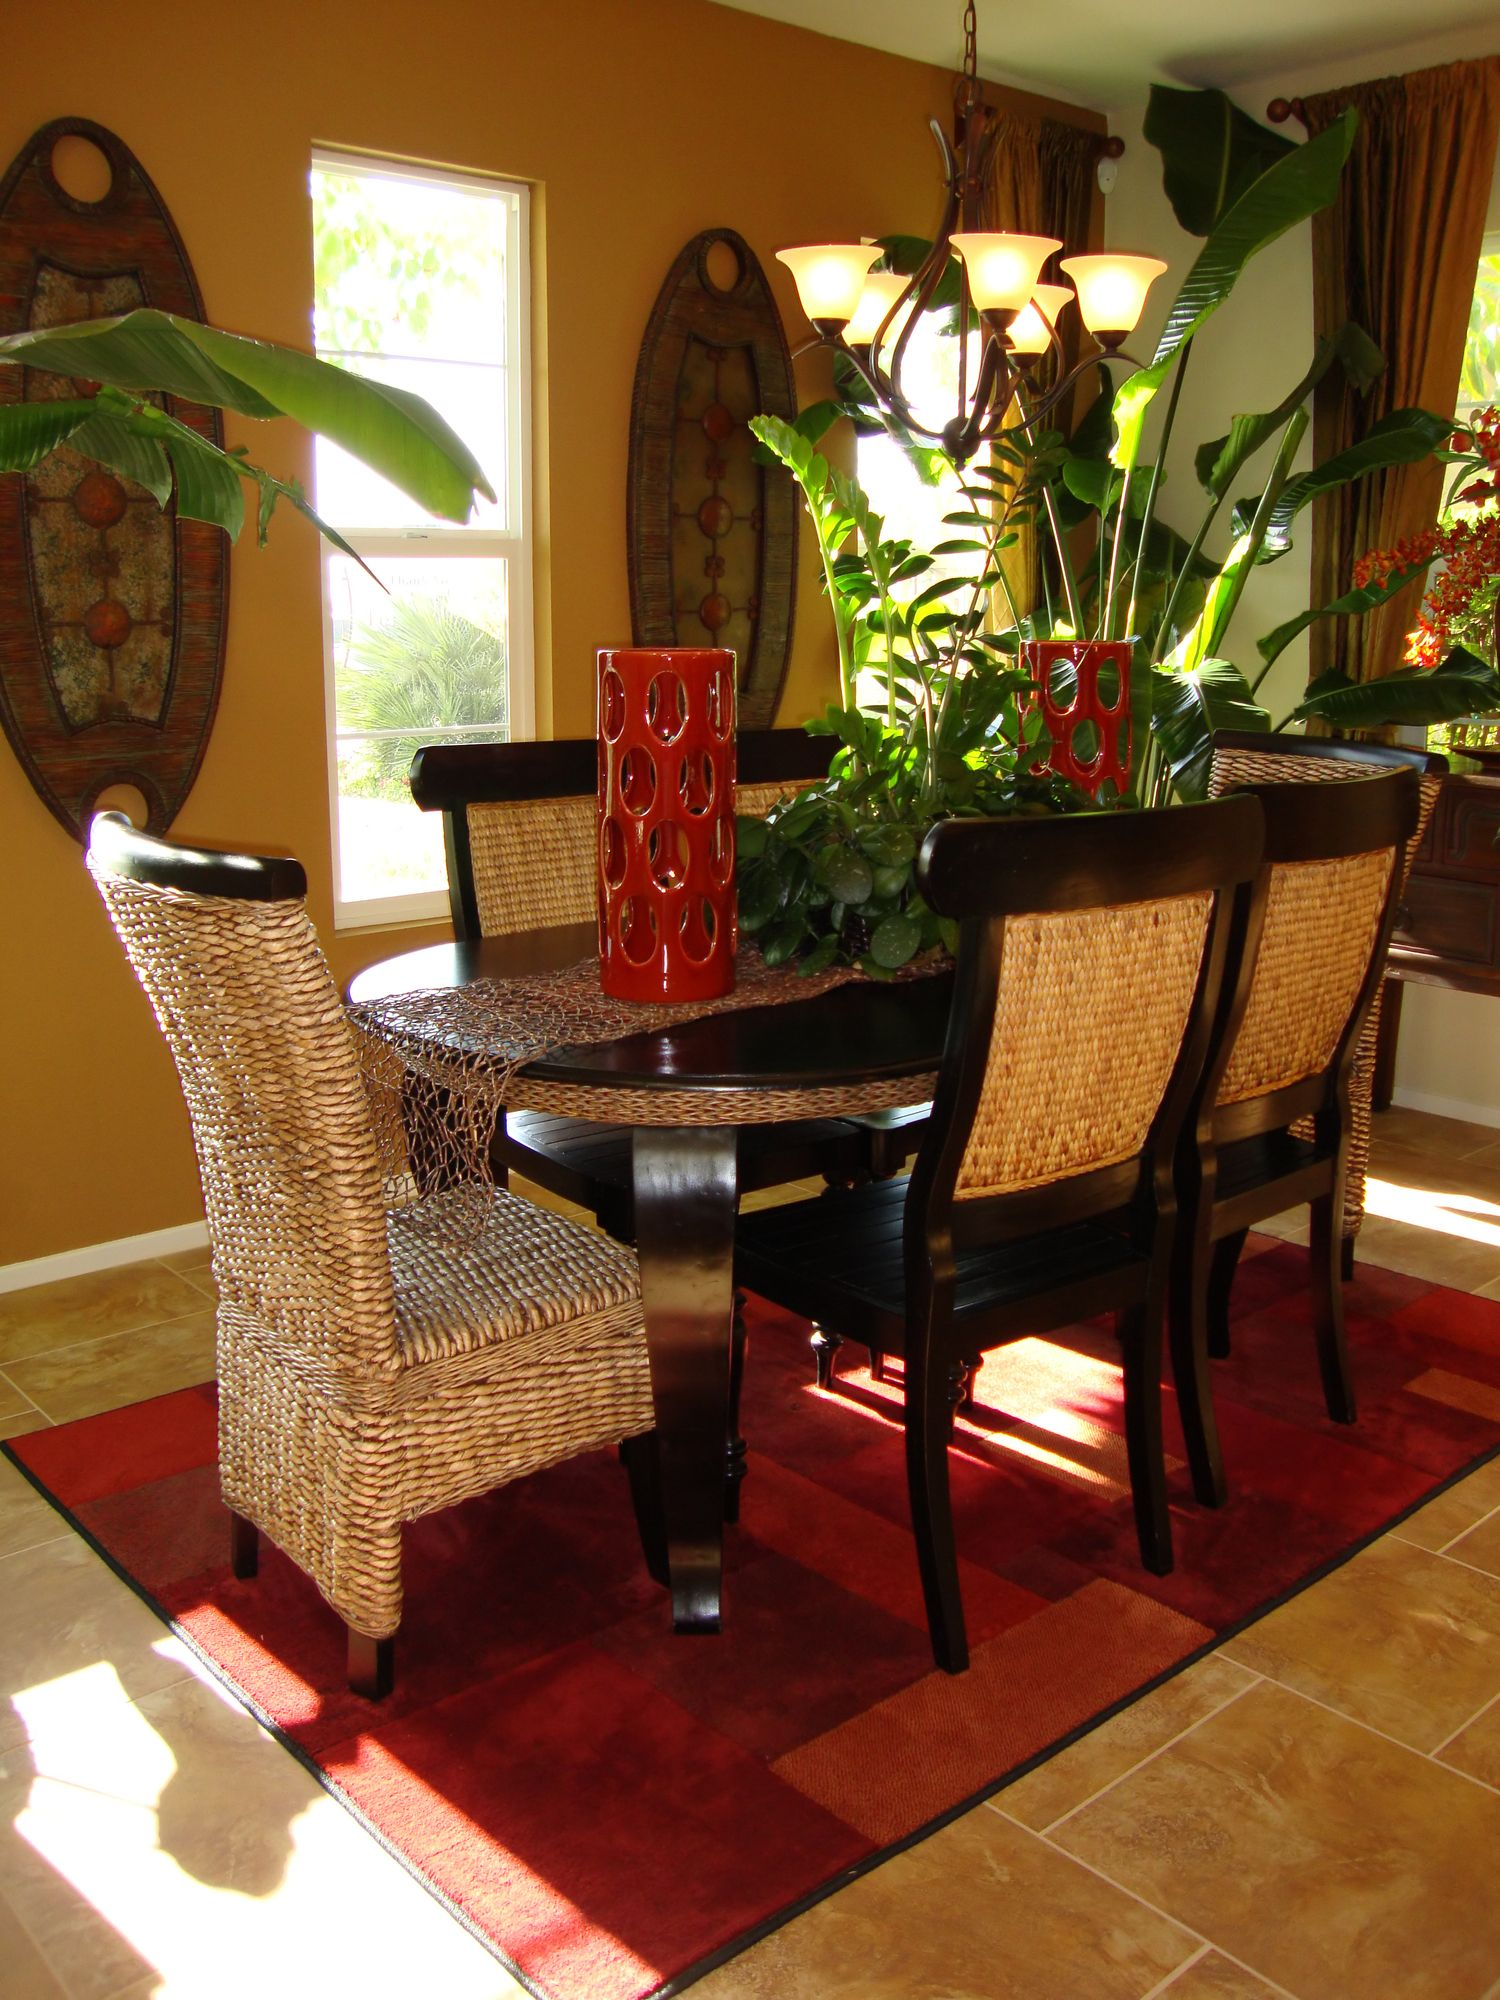 Dining Rooms Decorating Ideas Inspiration If You Are One Who Likes A Room To Be Warm With Color And Have Design Ideas